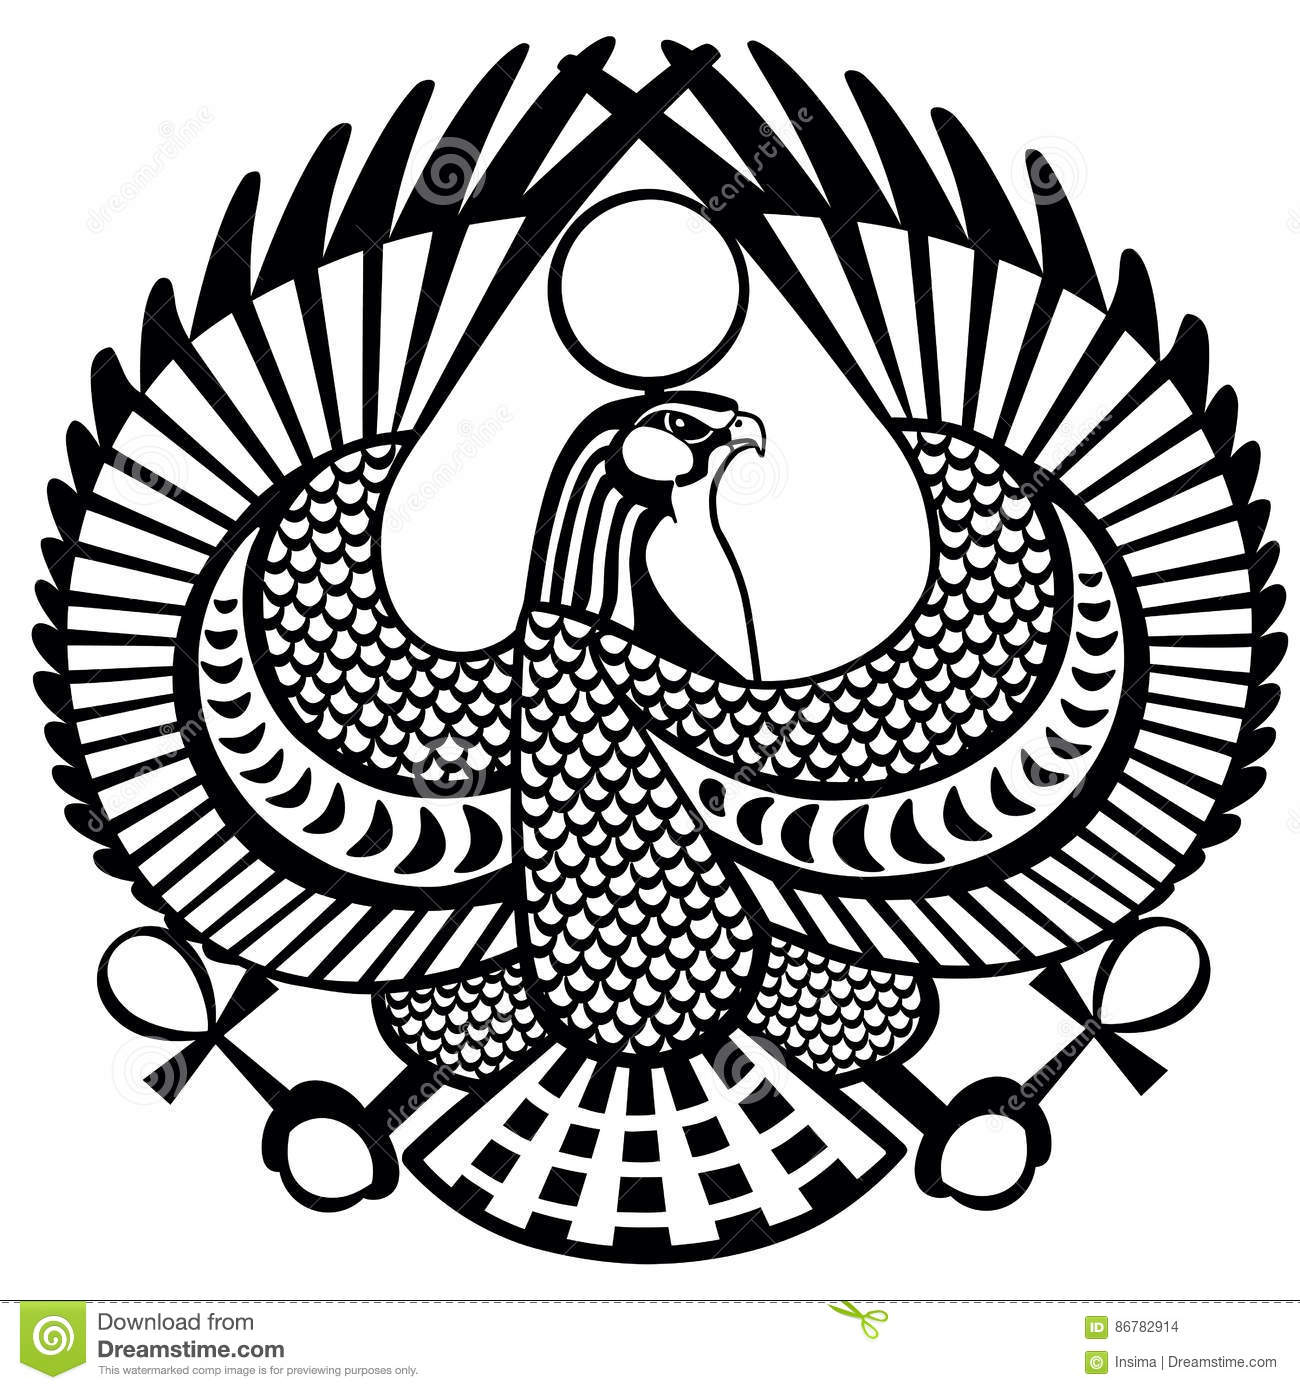 falcon symbol of horus black white stock vector image